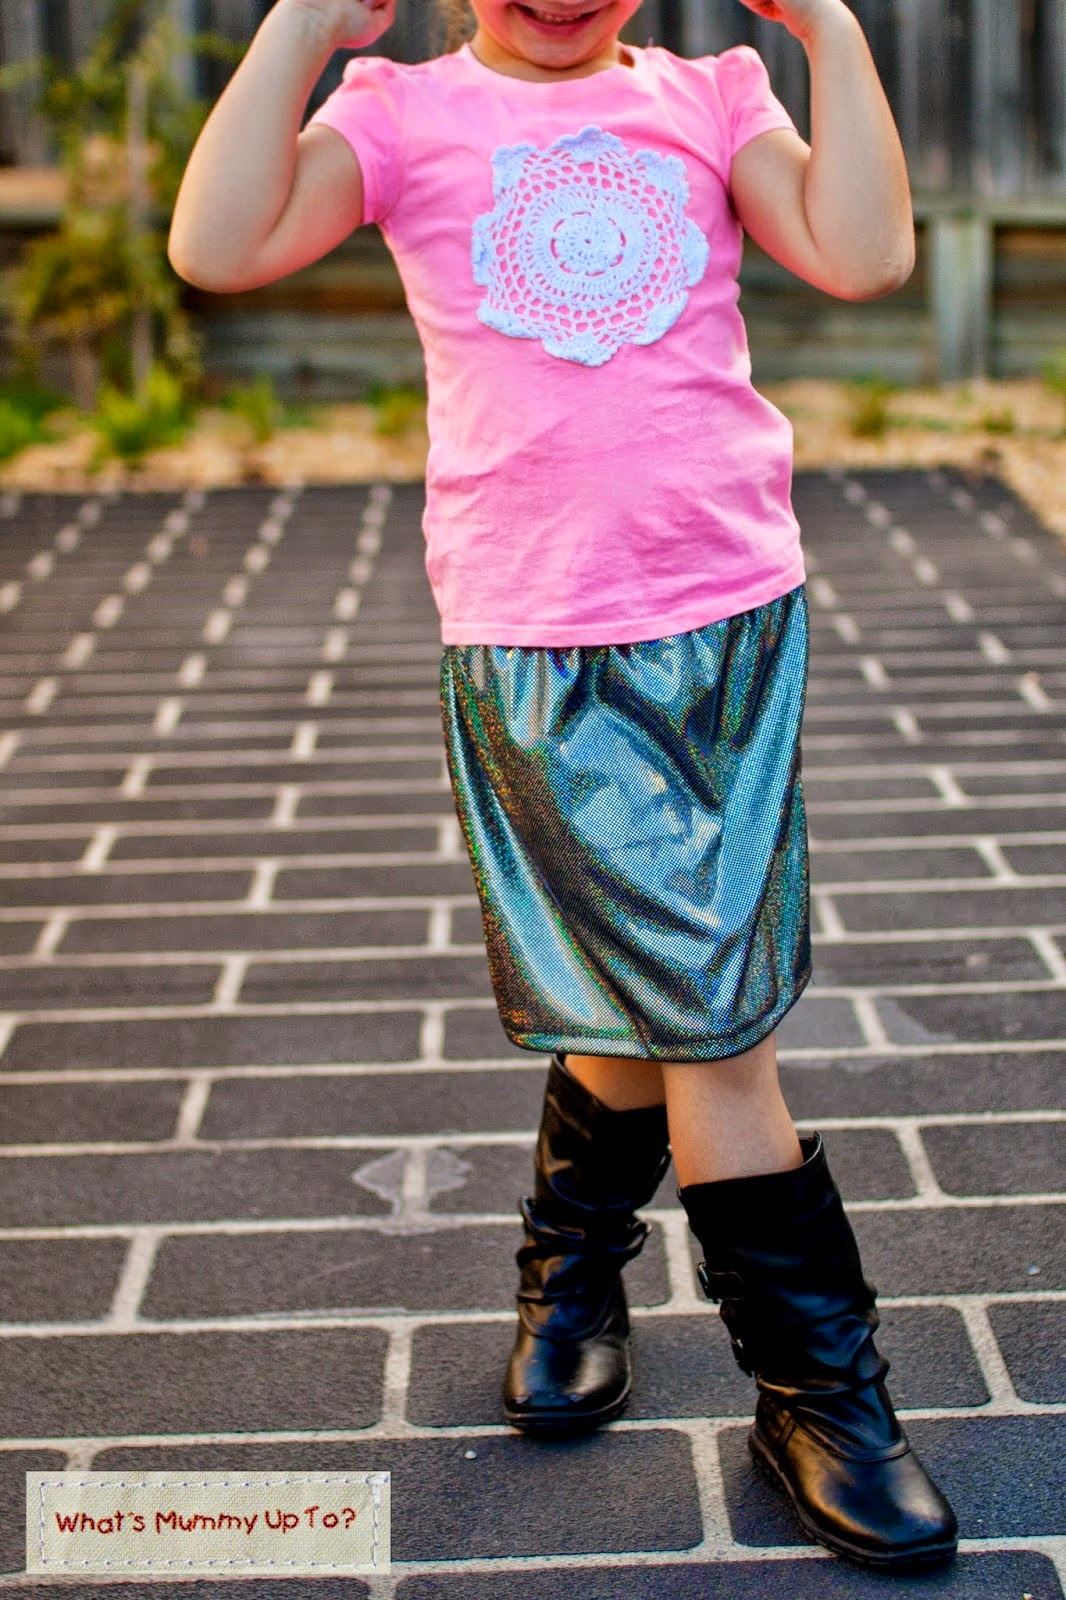 http://whatsmummyupto.blogspot.com.au/2014/05/tutorial-disco-diva-skirt.html